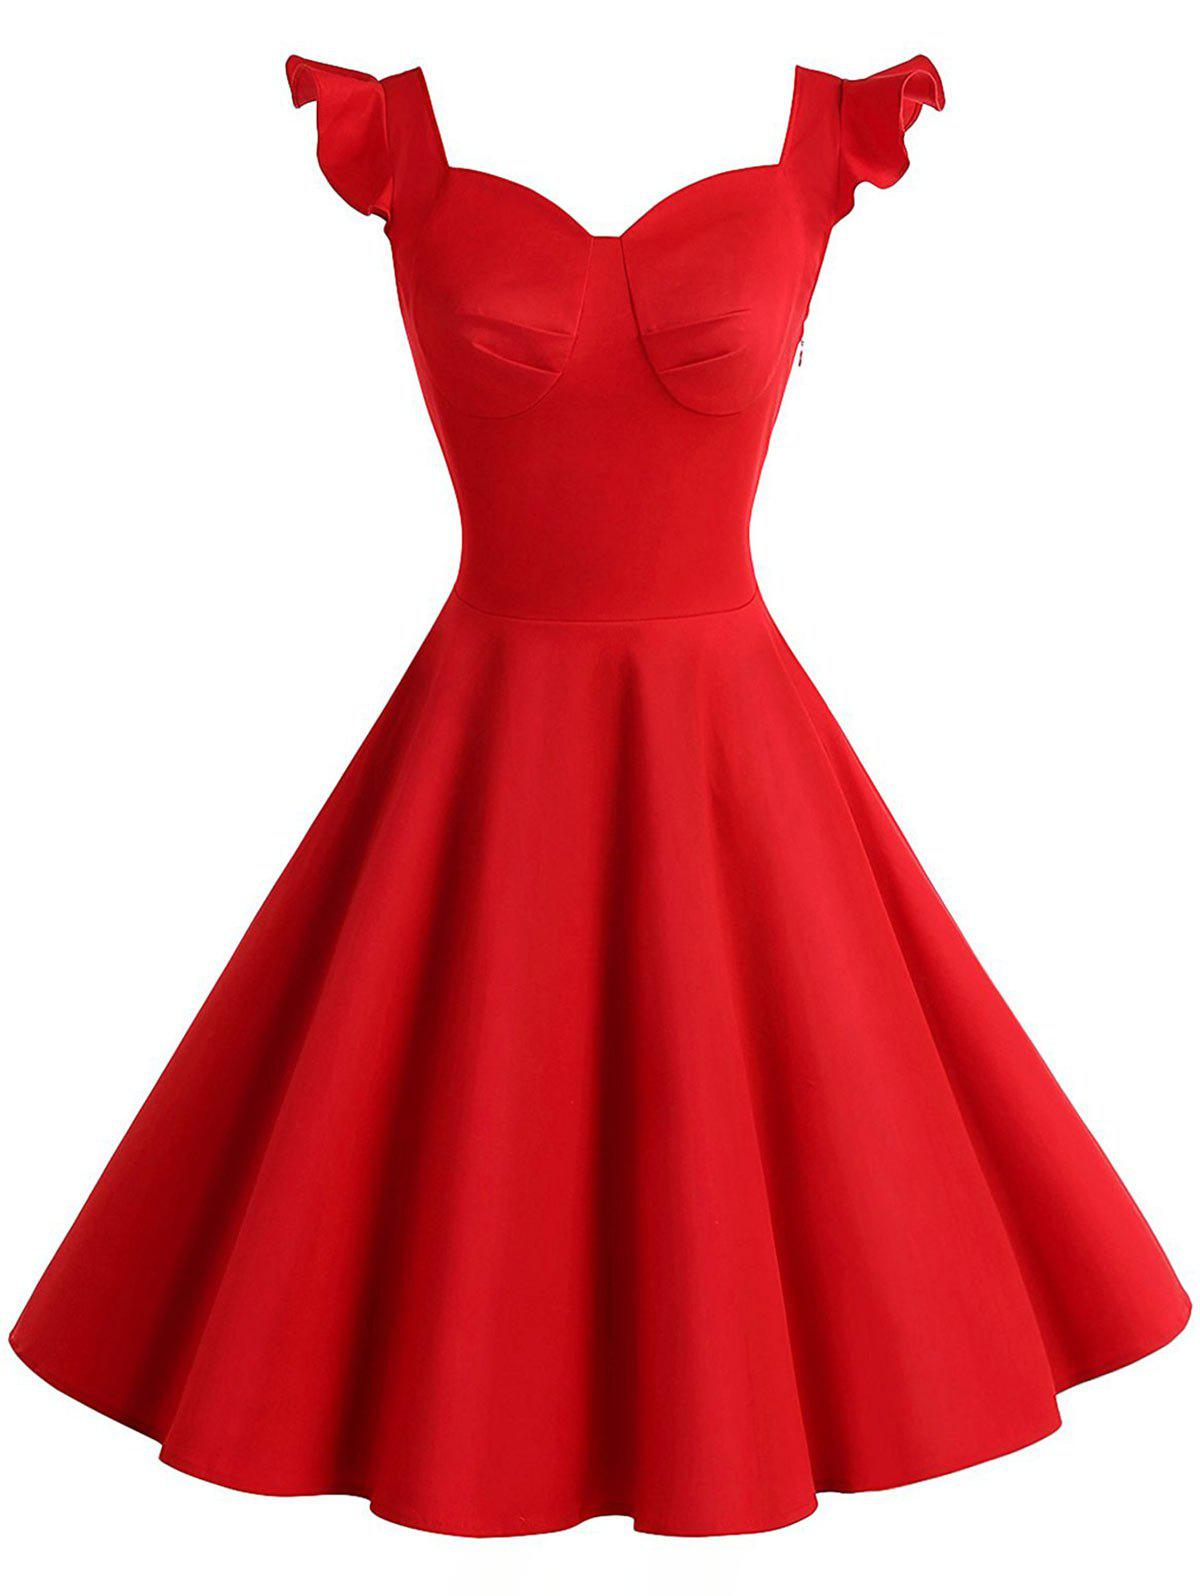 Vintage Cut Out Flounce Pinup DressWOMEN<br><br>Size: XL; Color: RED; Style: Vintage; Material: Cotton,Polyester; Silhouette: A-Line; Dresses Length: Knee-Length; Neckline: Sweetheart Neck; Sleeve Type: Cap Sleeve; Sleeve Length: Short Sleeves; Pattern Type: Solid Color; With Belt: No; Season: Fall,Spring,Summer; Weight: 0.3500kg; Package Contents: 1 x Dress;